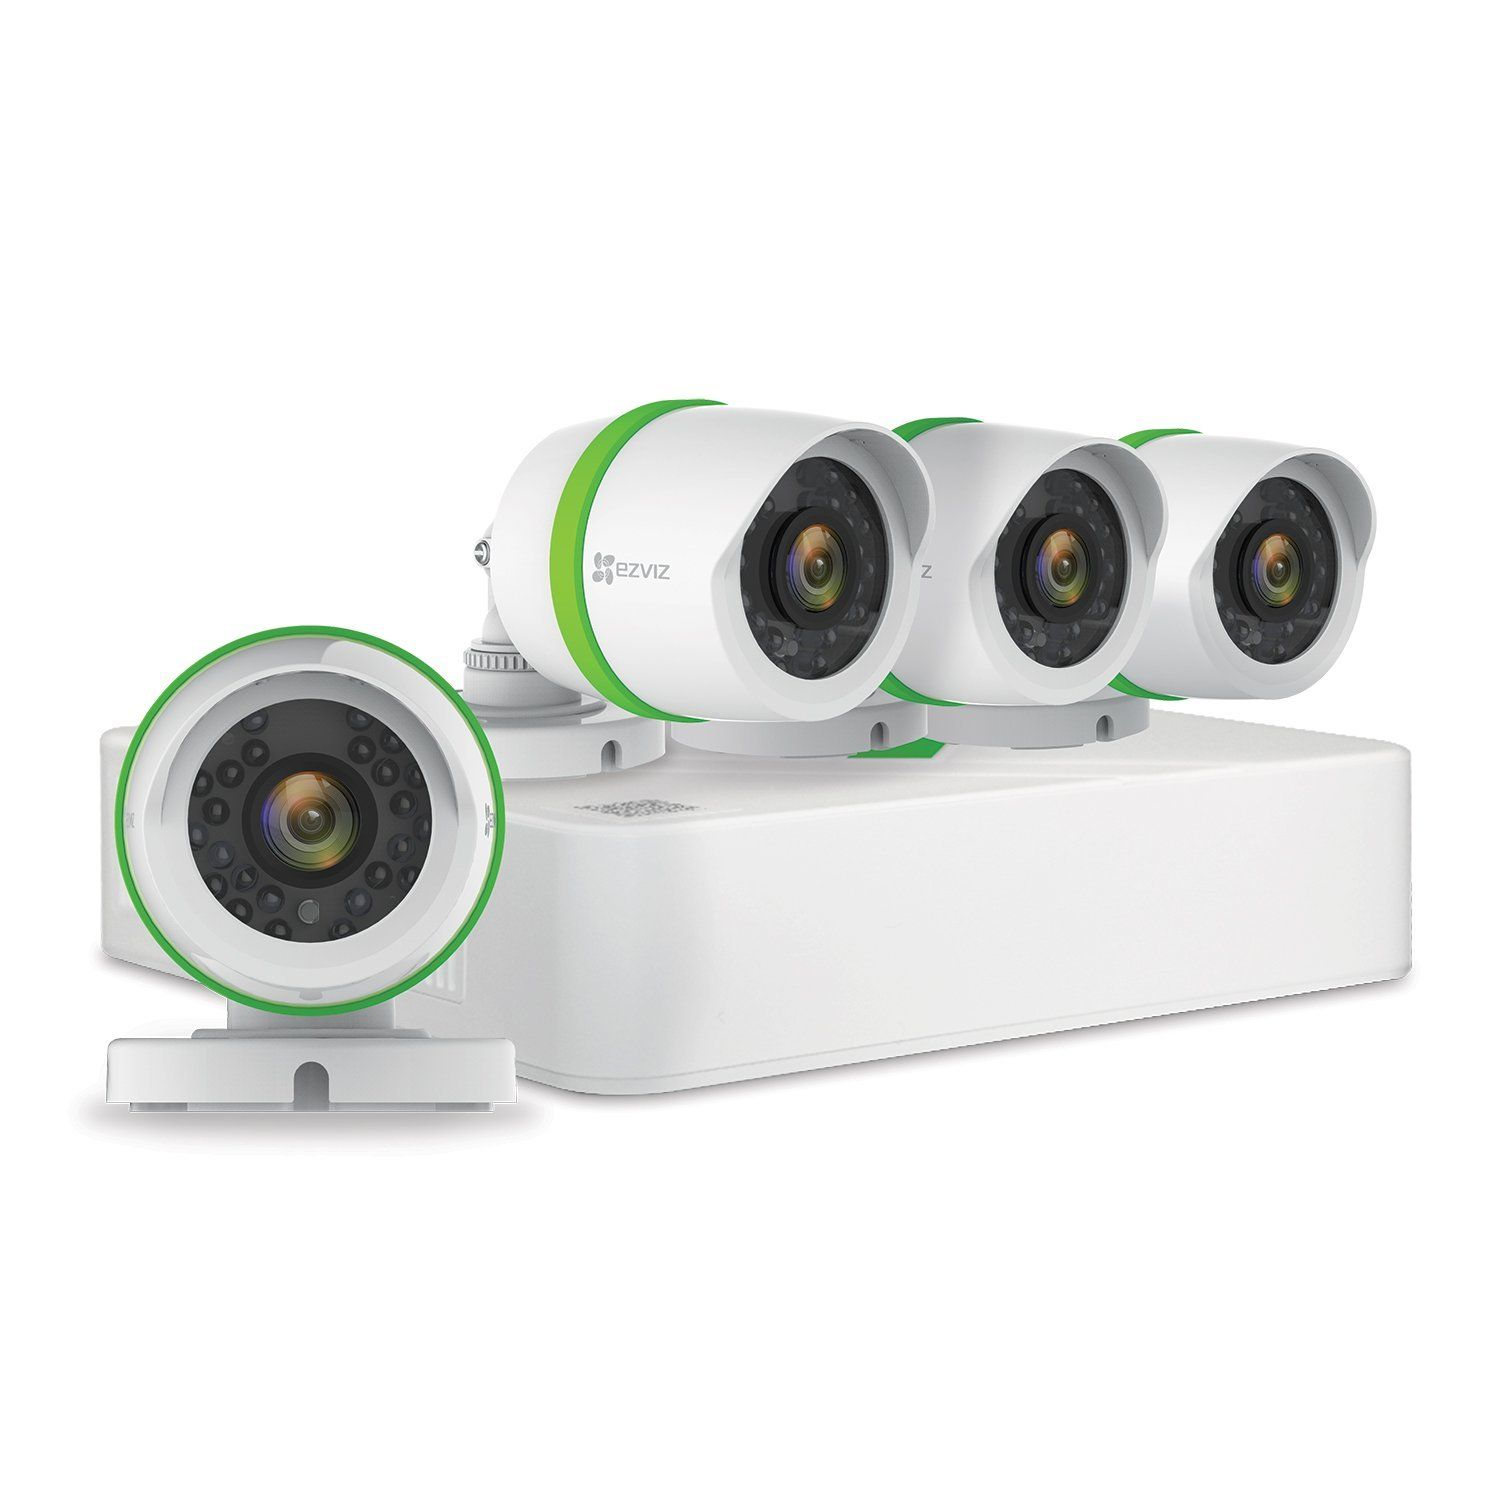 EZVIZ FULL HD 1080p Outdoor Surveillance System, 4 Weatherproof HD ...